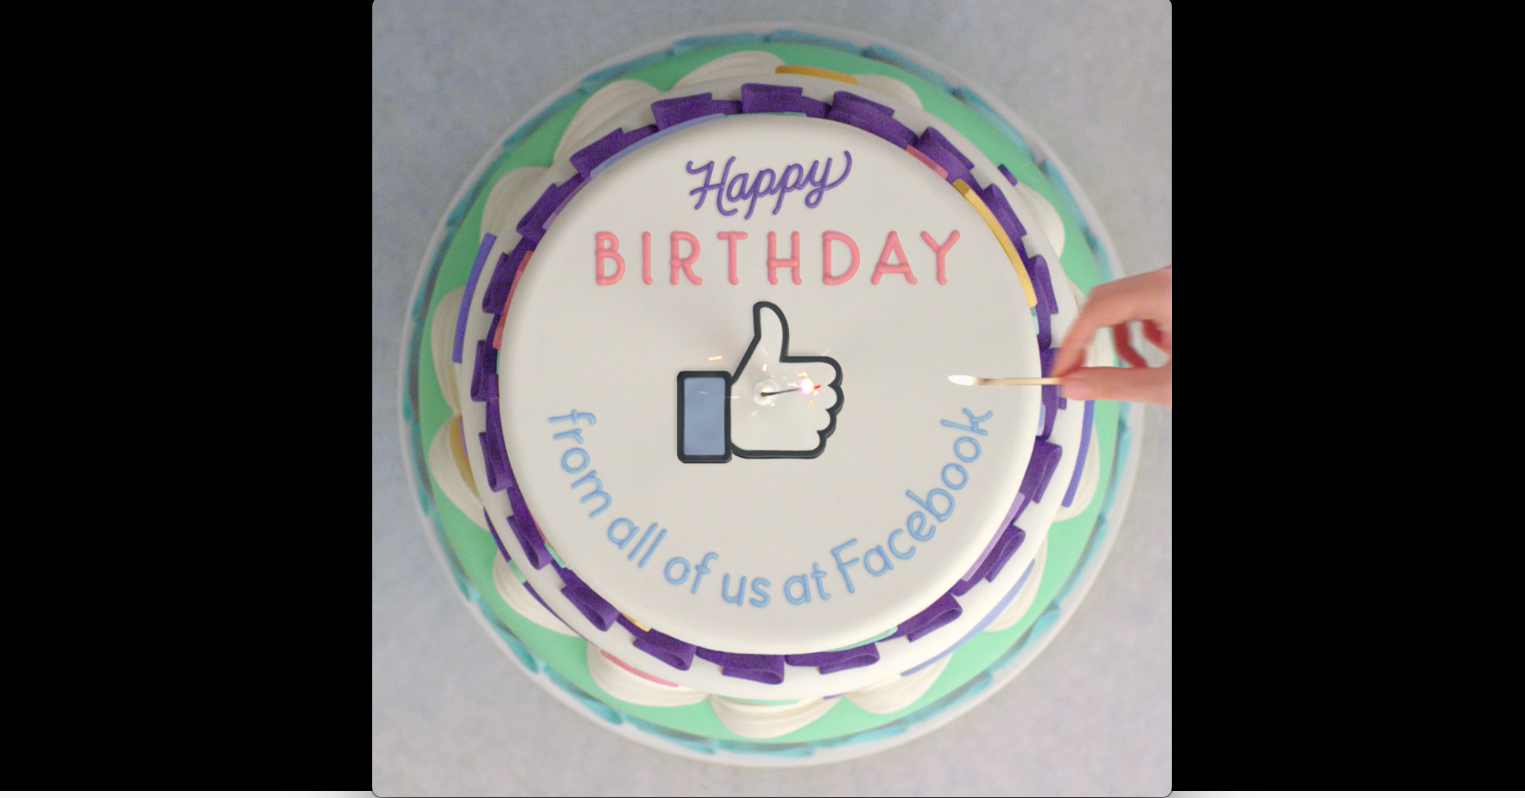 Facebook tightens iron grip on birthdays with recap videos TechCrunch